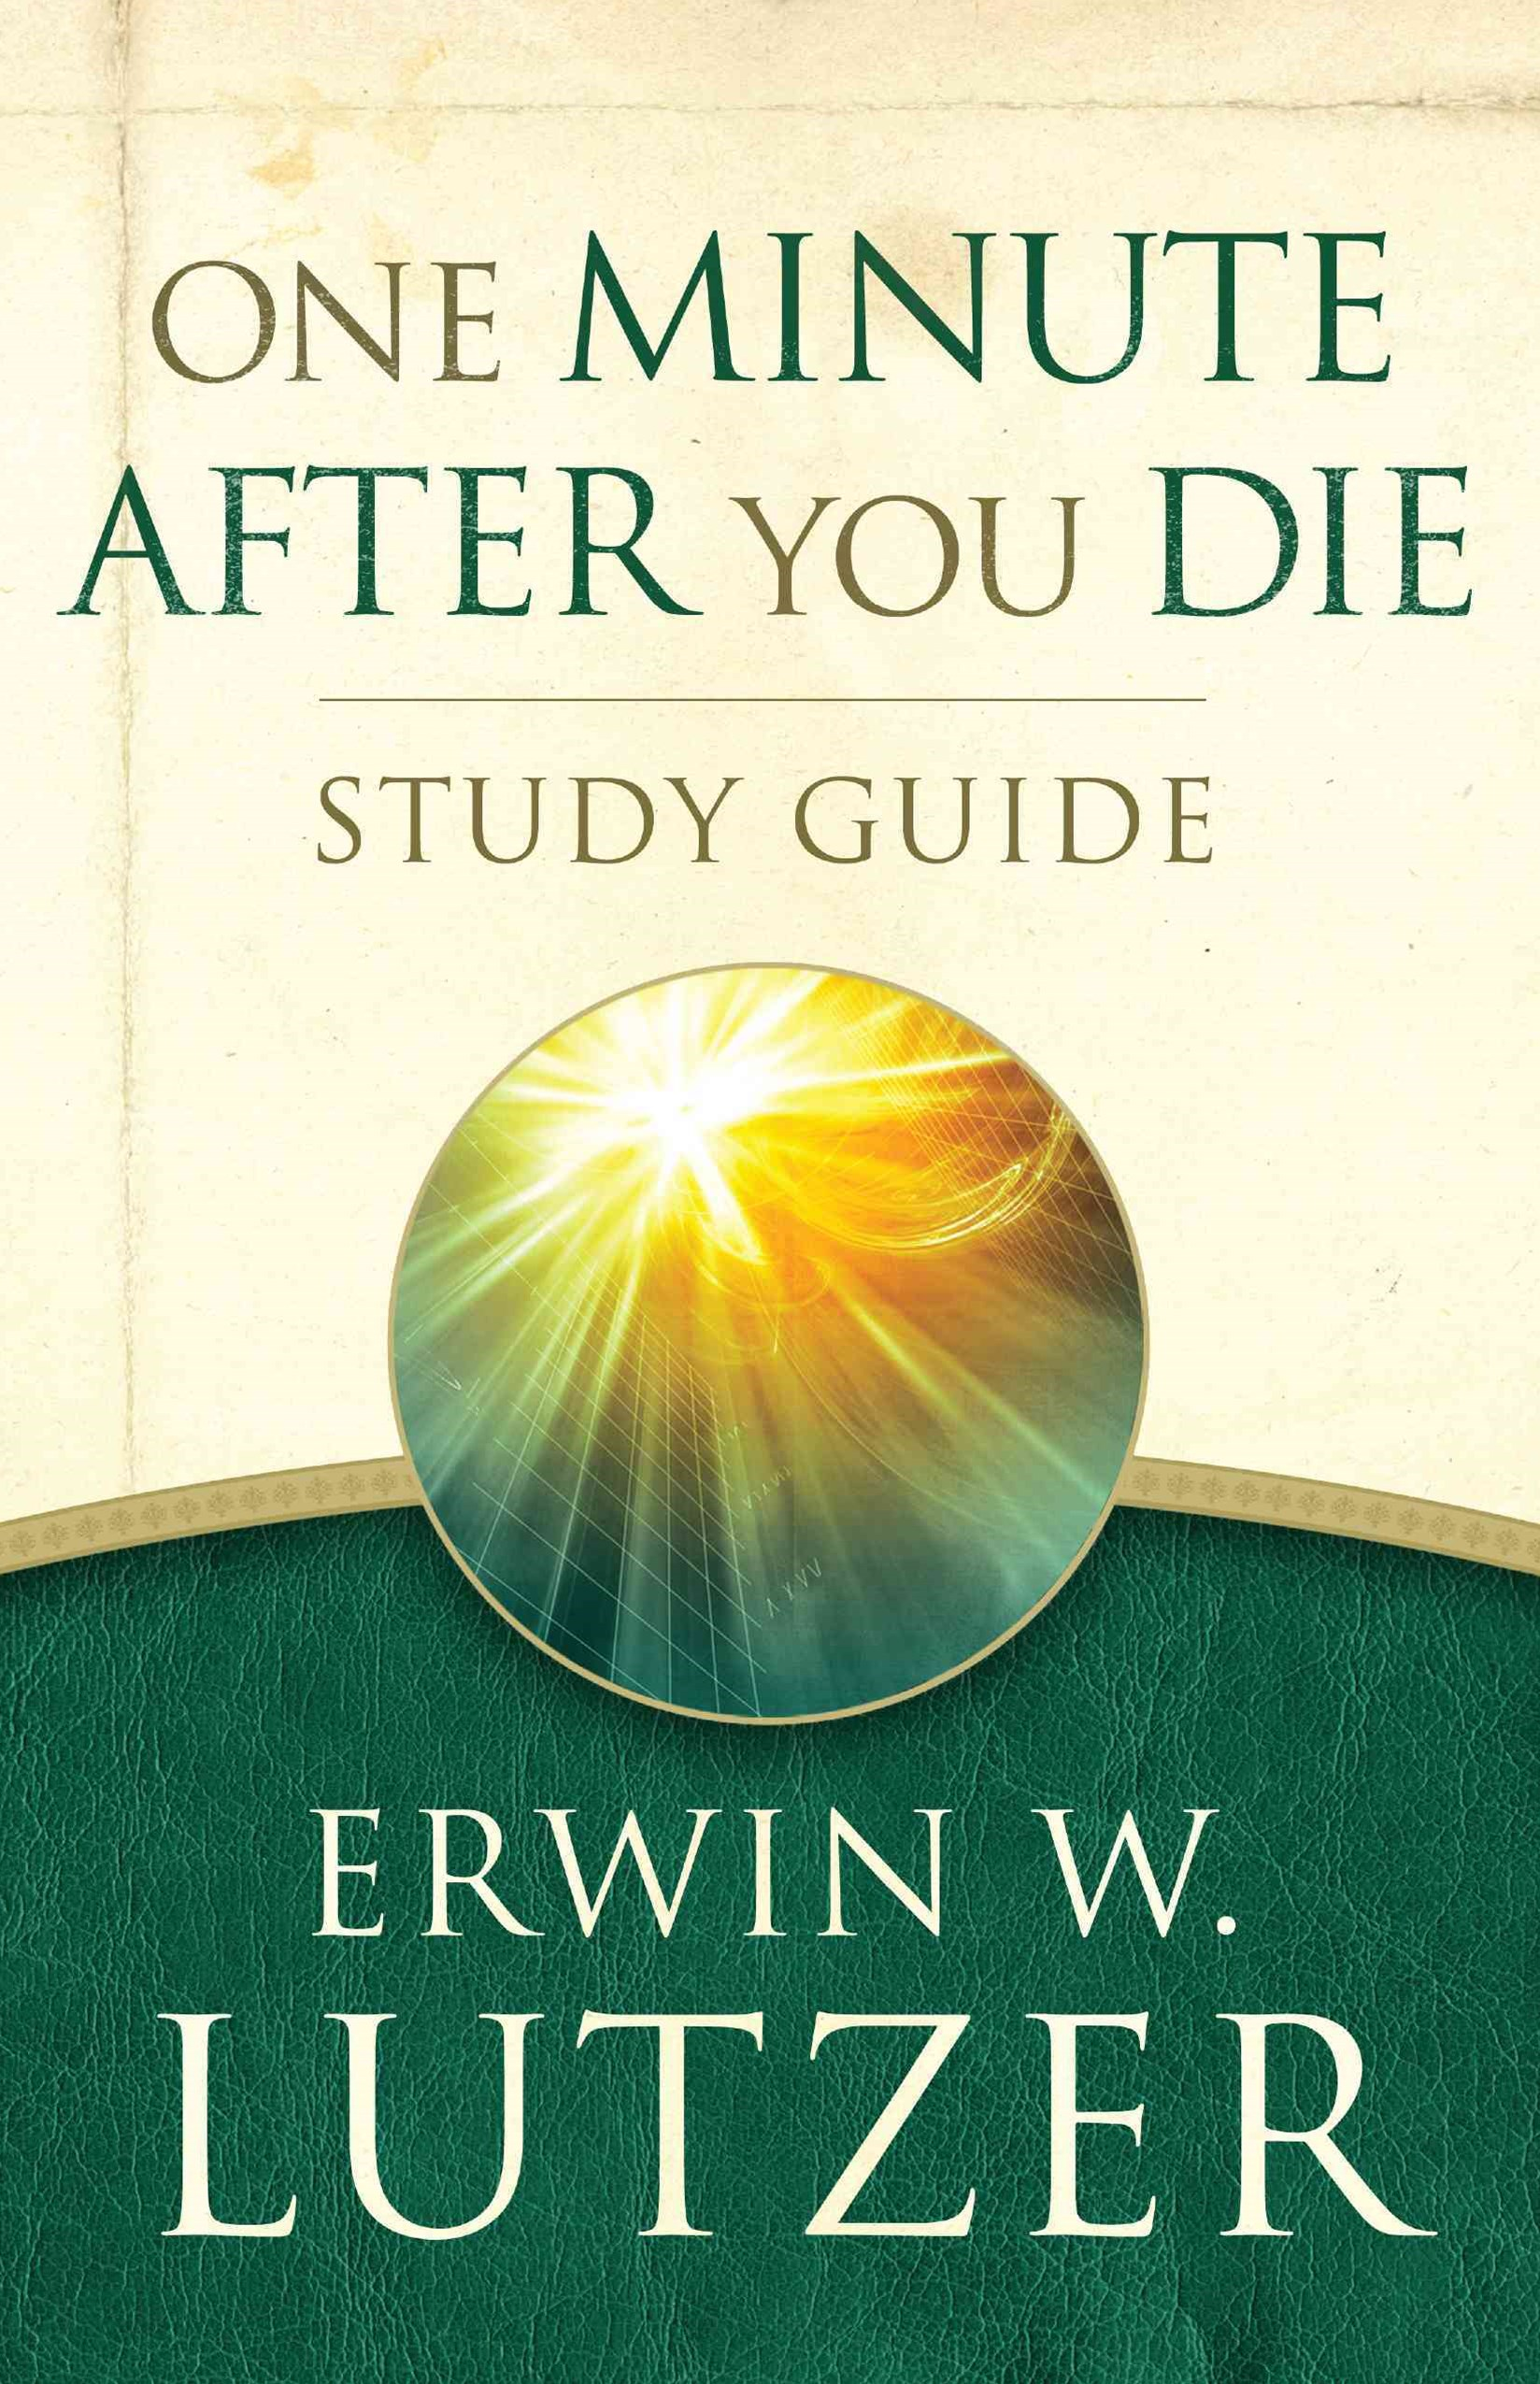 ONE MINUTE AFTER YOU DIE STUDY GUIDE